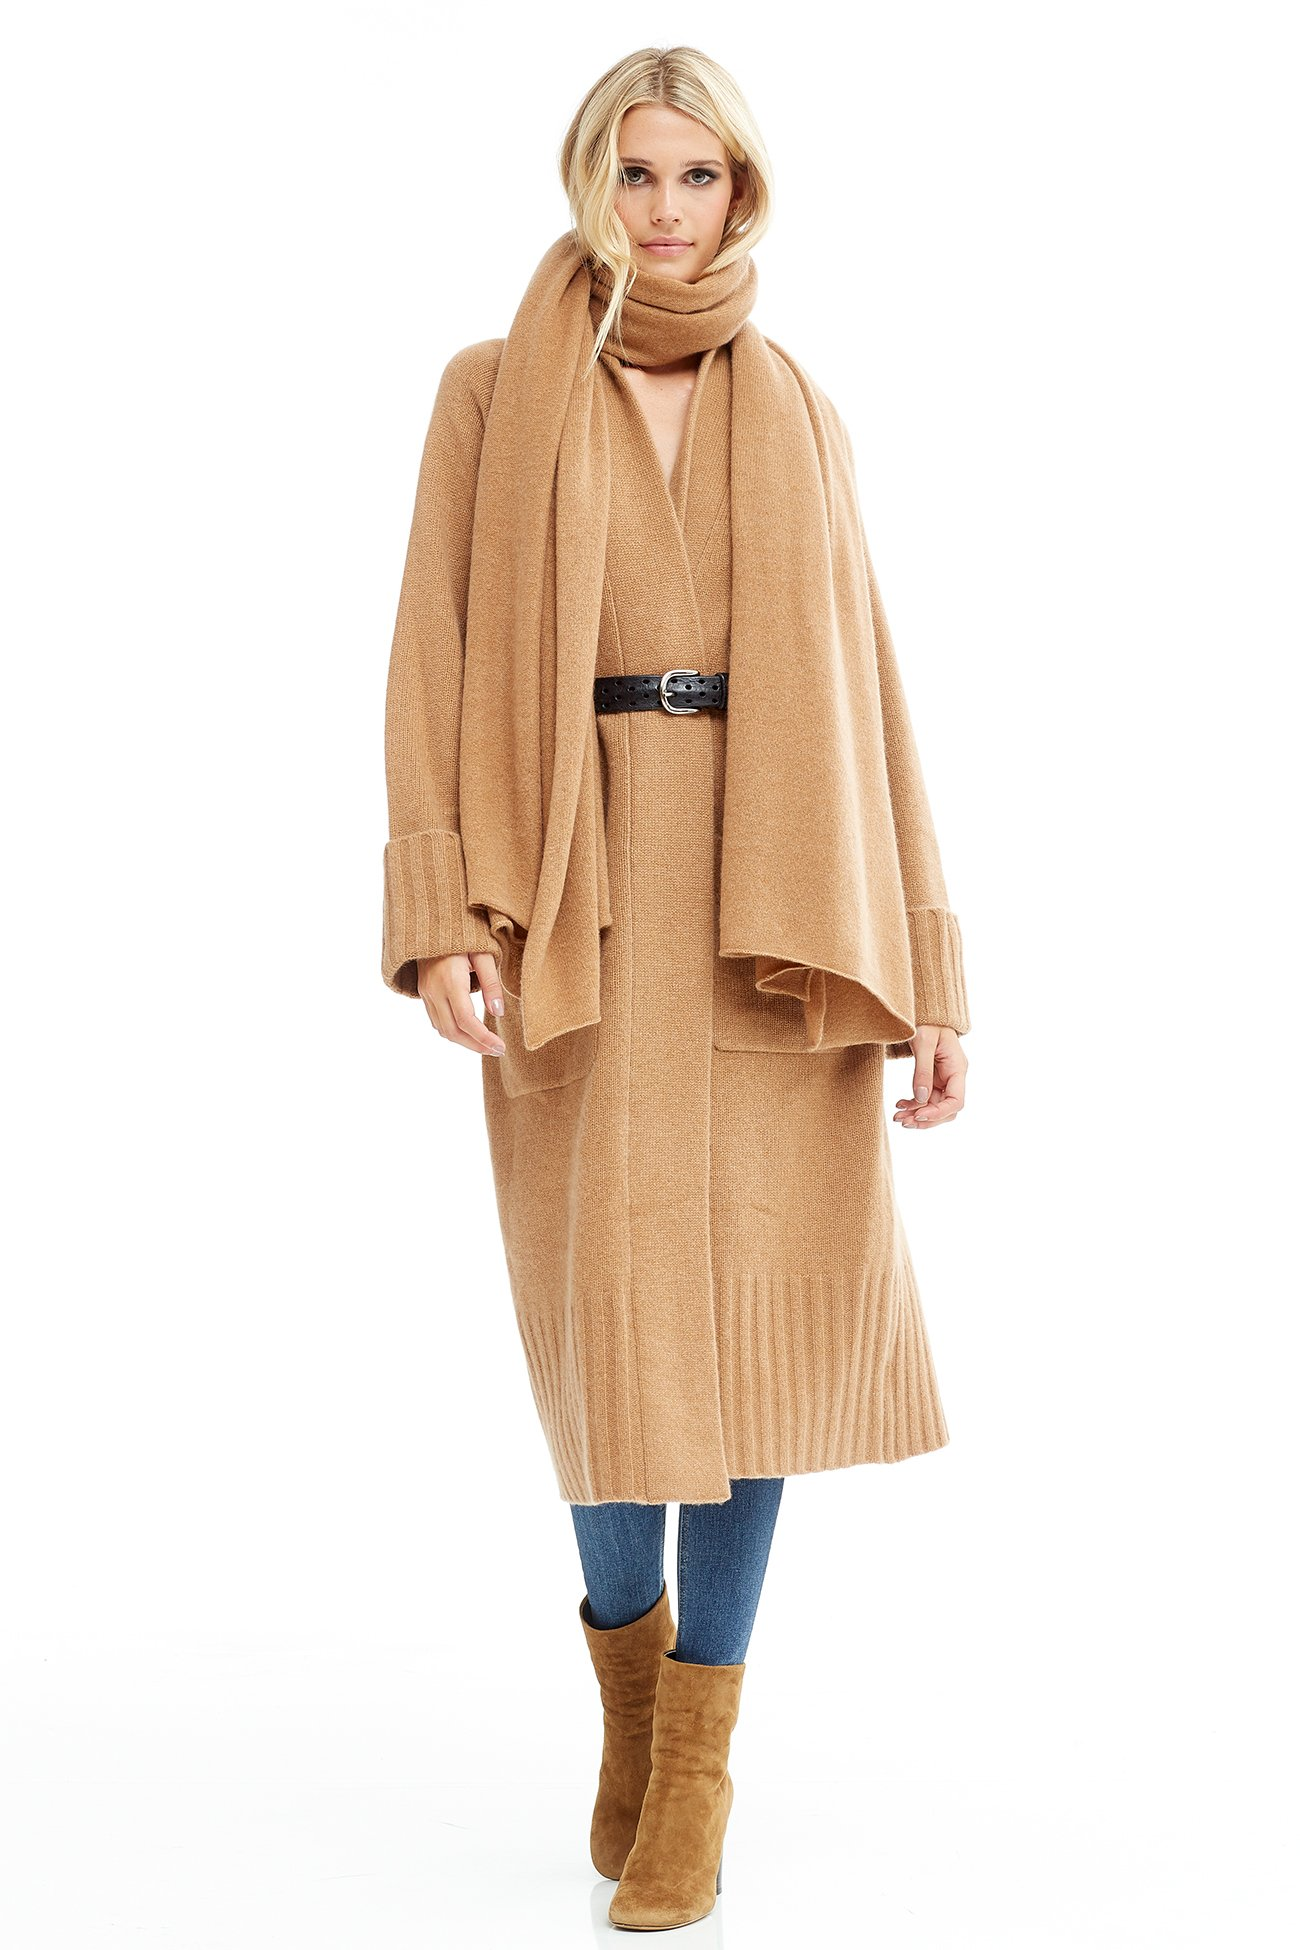 NAKEDCASHMERE Women's Karlie Wrap O/S Caramel by NAKEDCASHMERE